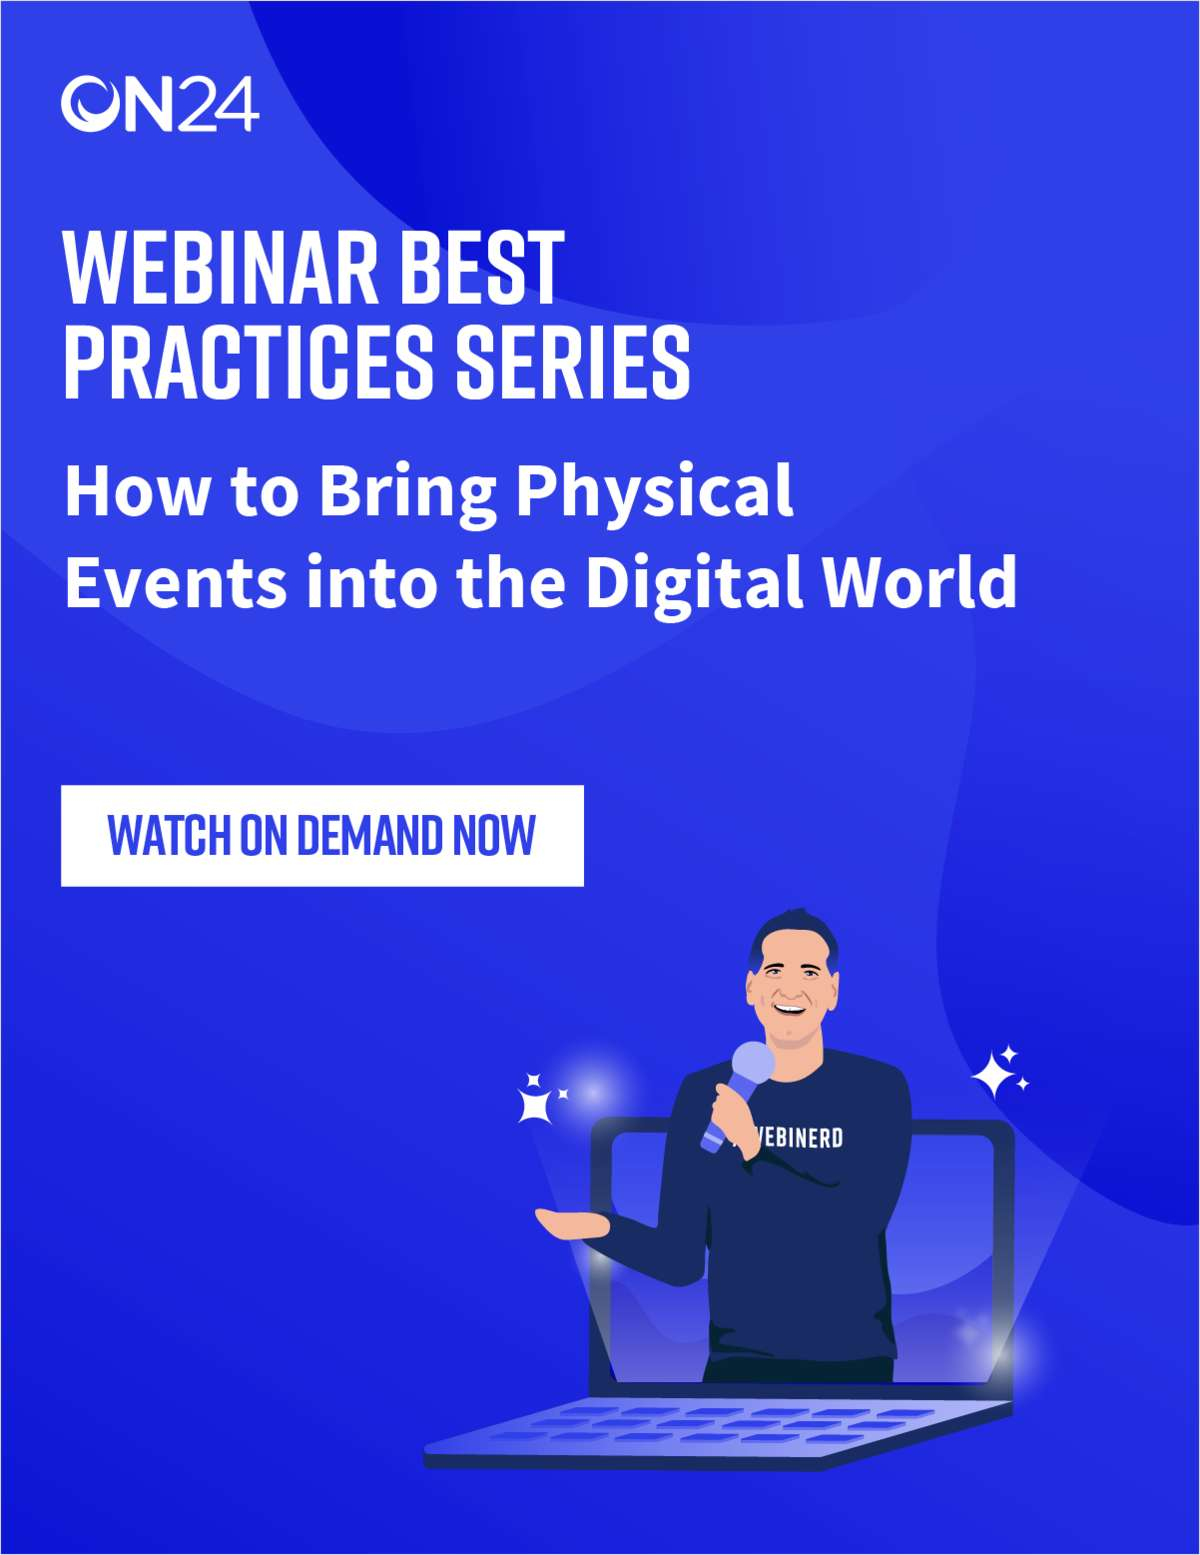 How to Bring Physical Events into the Digital World